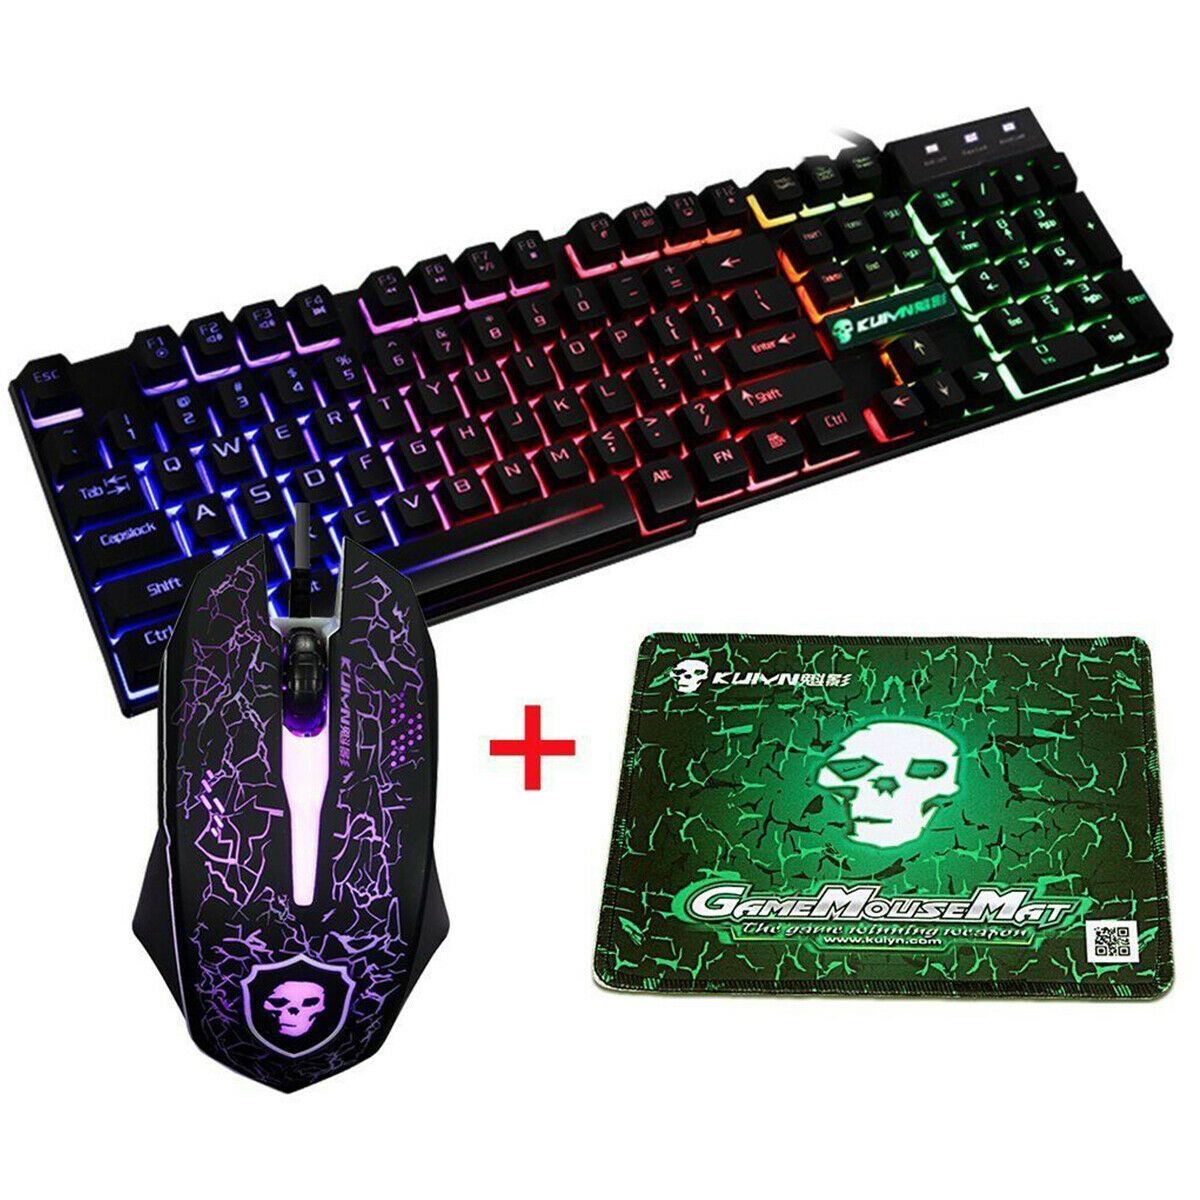 3 colors LED Illuminated Backlight USB Wired Gaming Keyboard WITH LED MOUSE MG